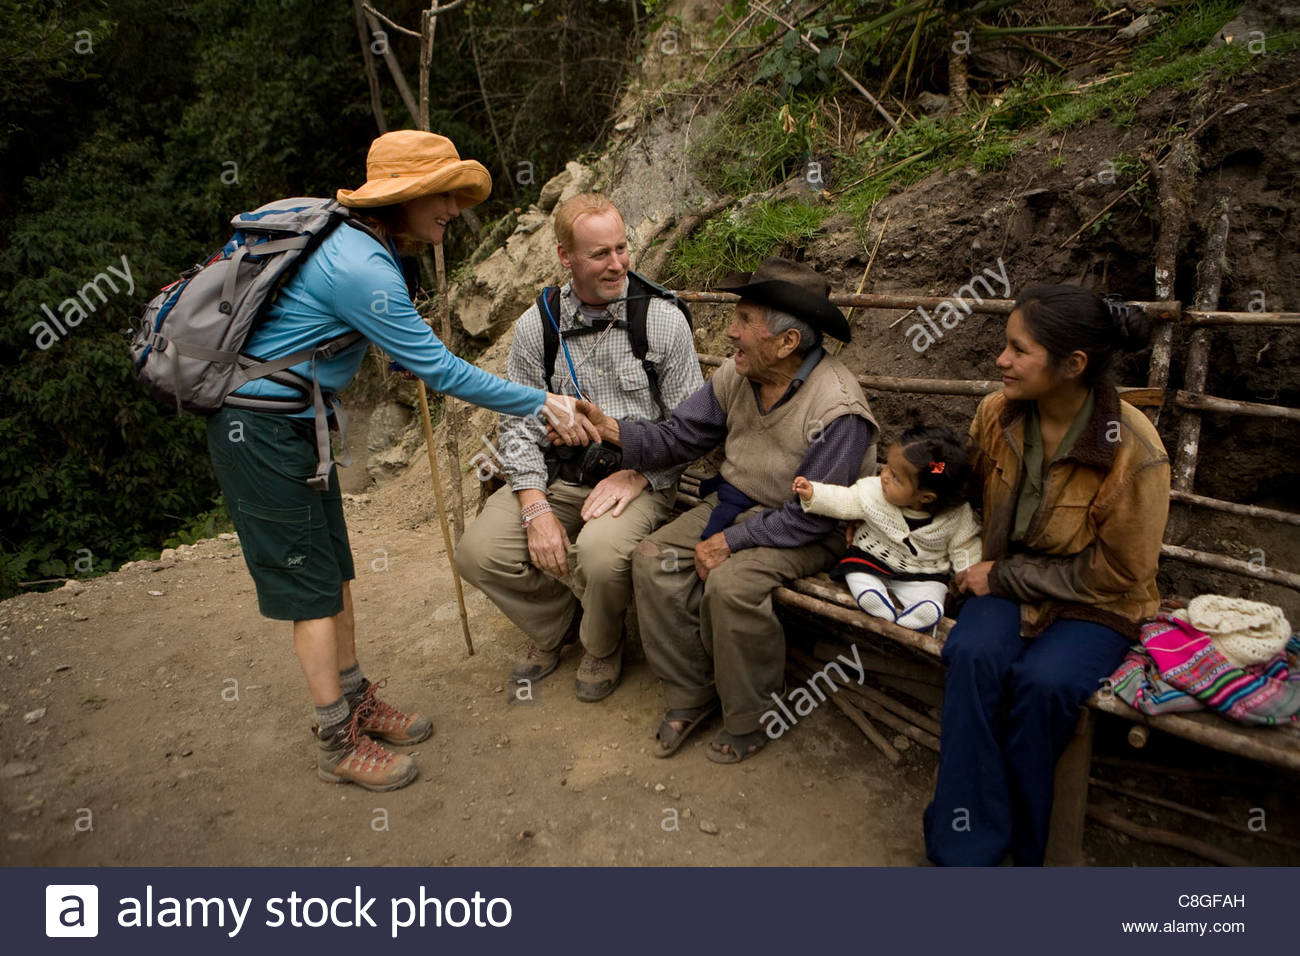 A hiker pauses to meet a 100 year old man and his family. - Stock Image